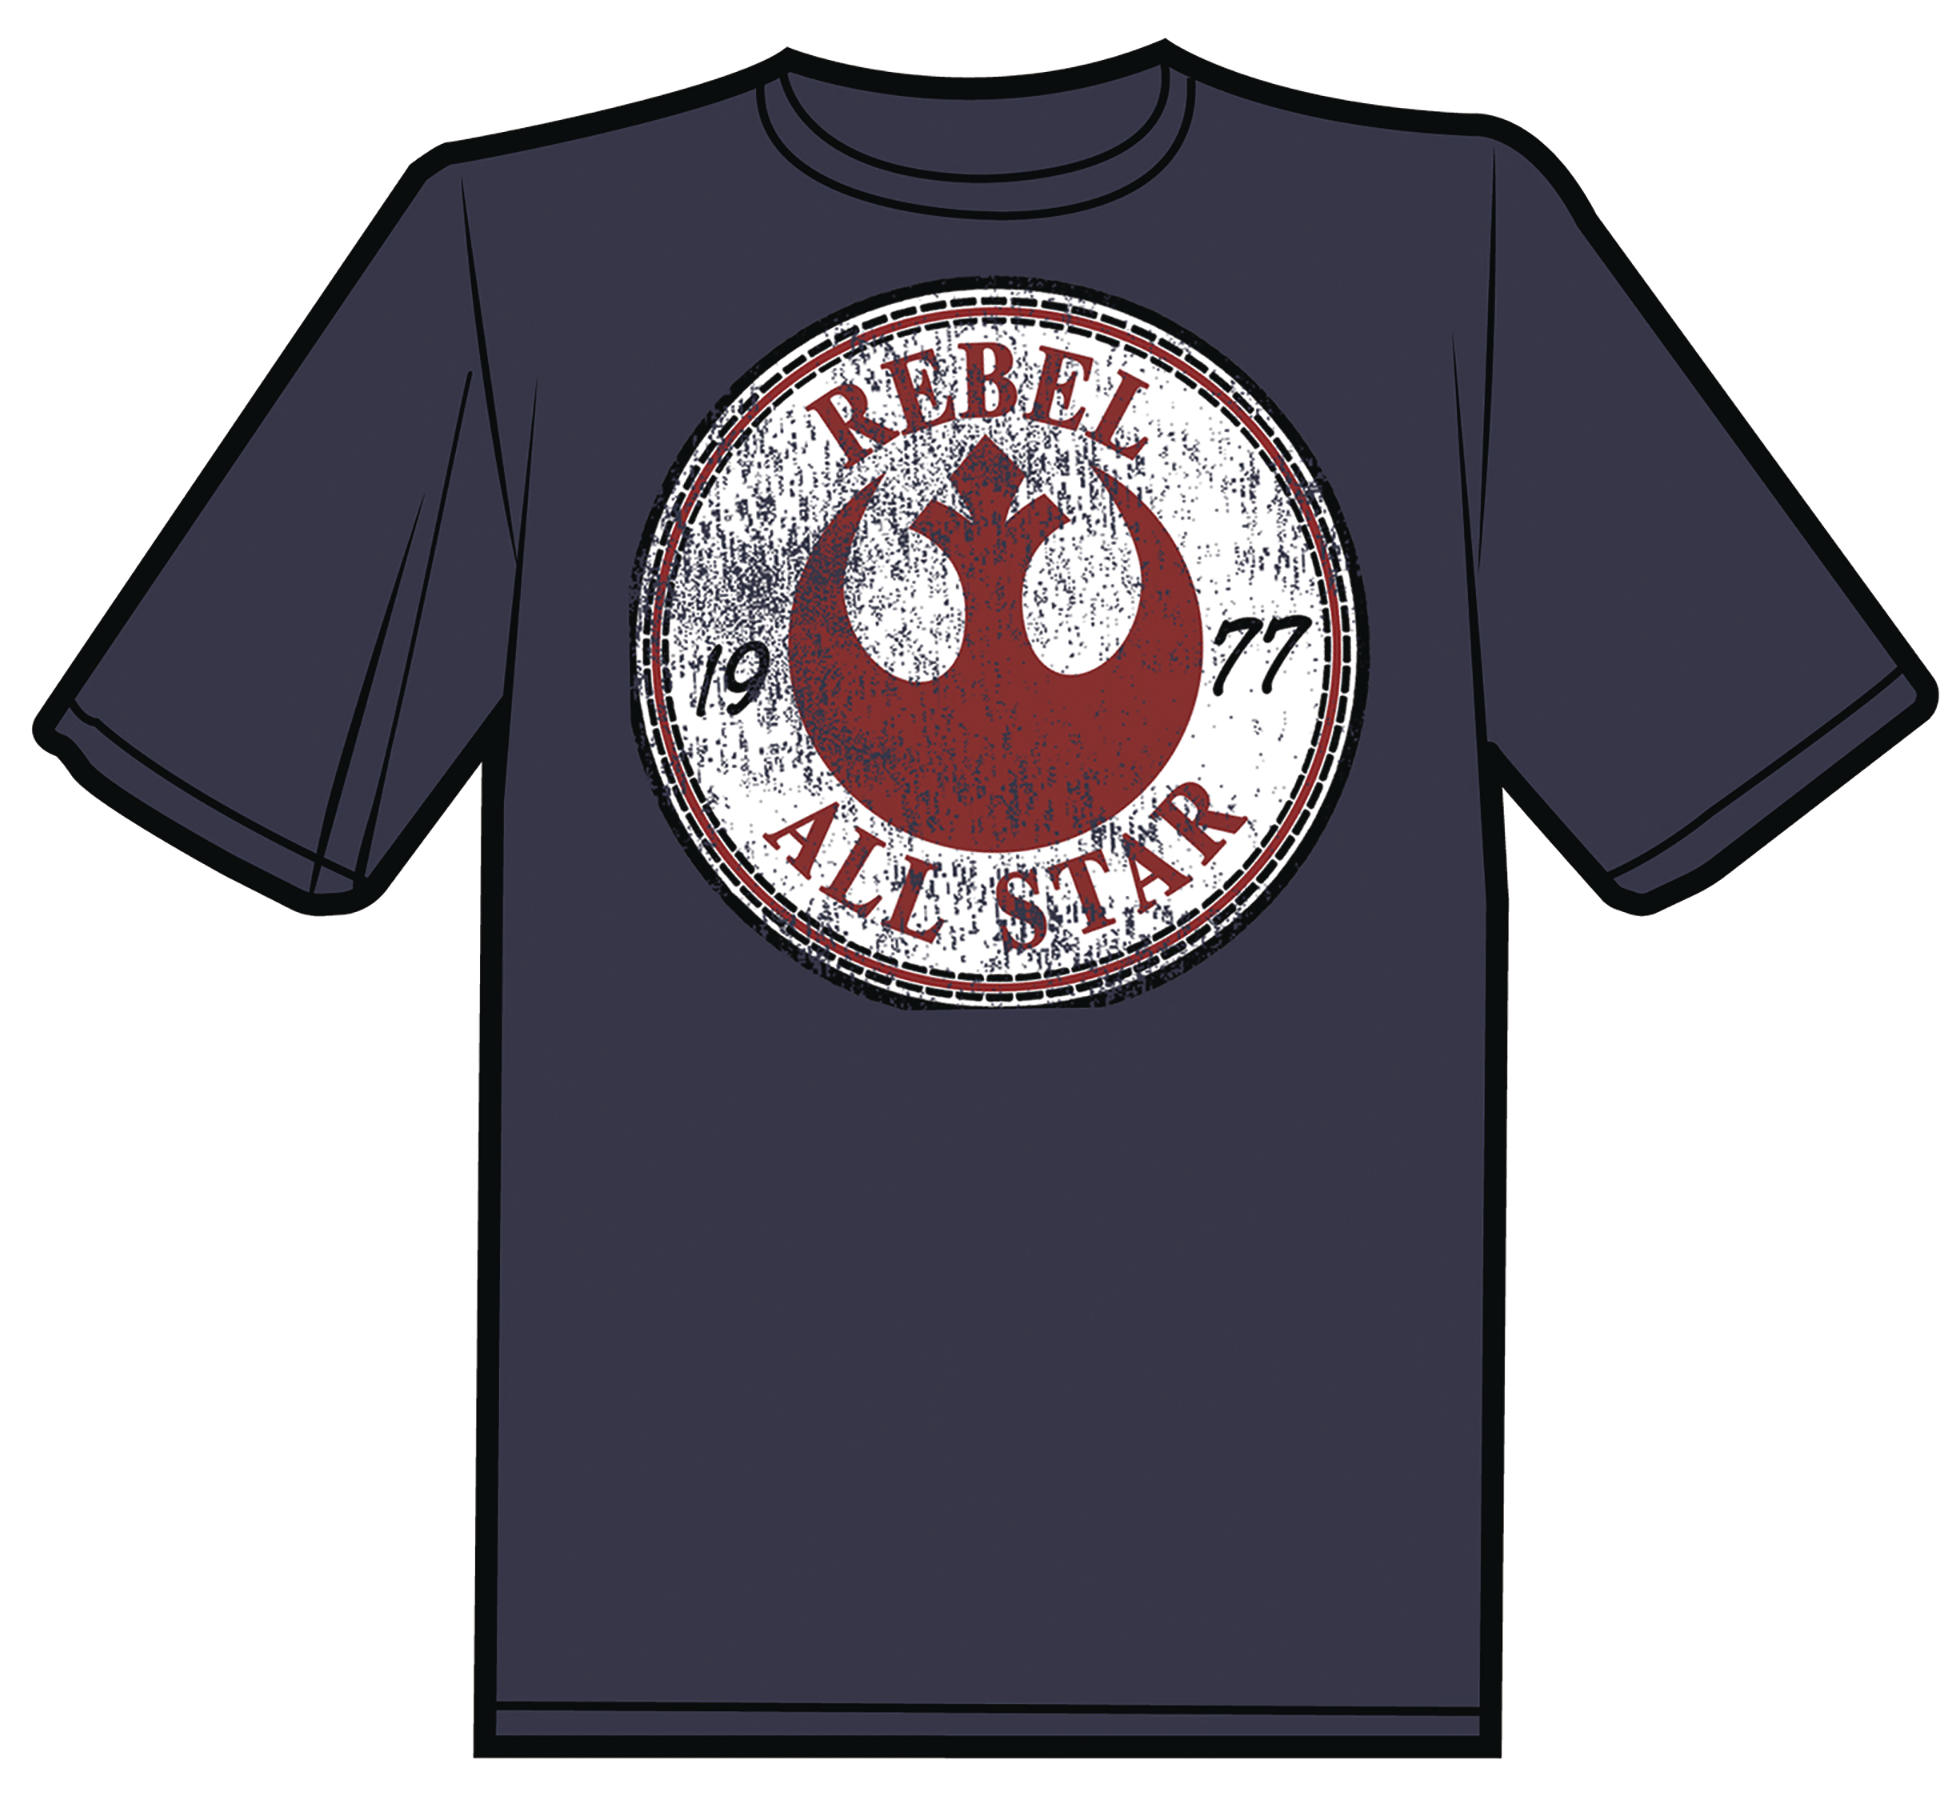 REBEL ALL-STARS VINTAGE DISTRESSED T/S SM